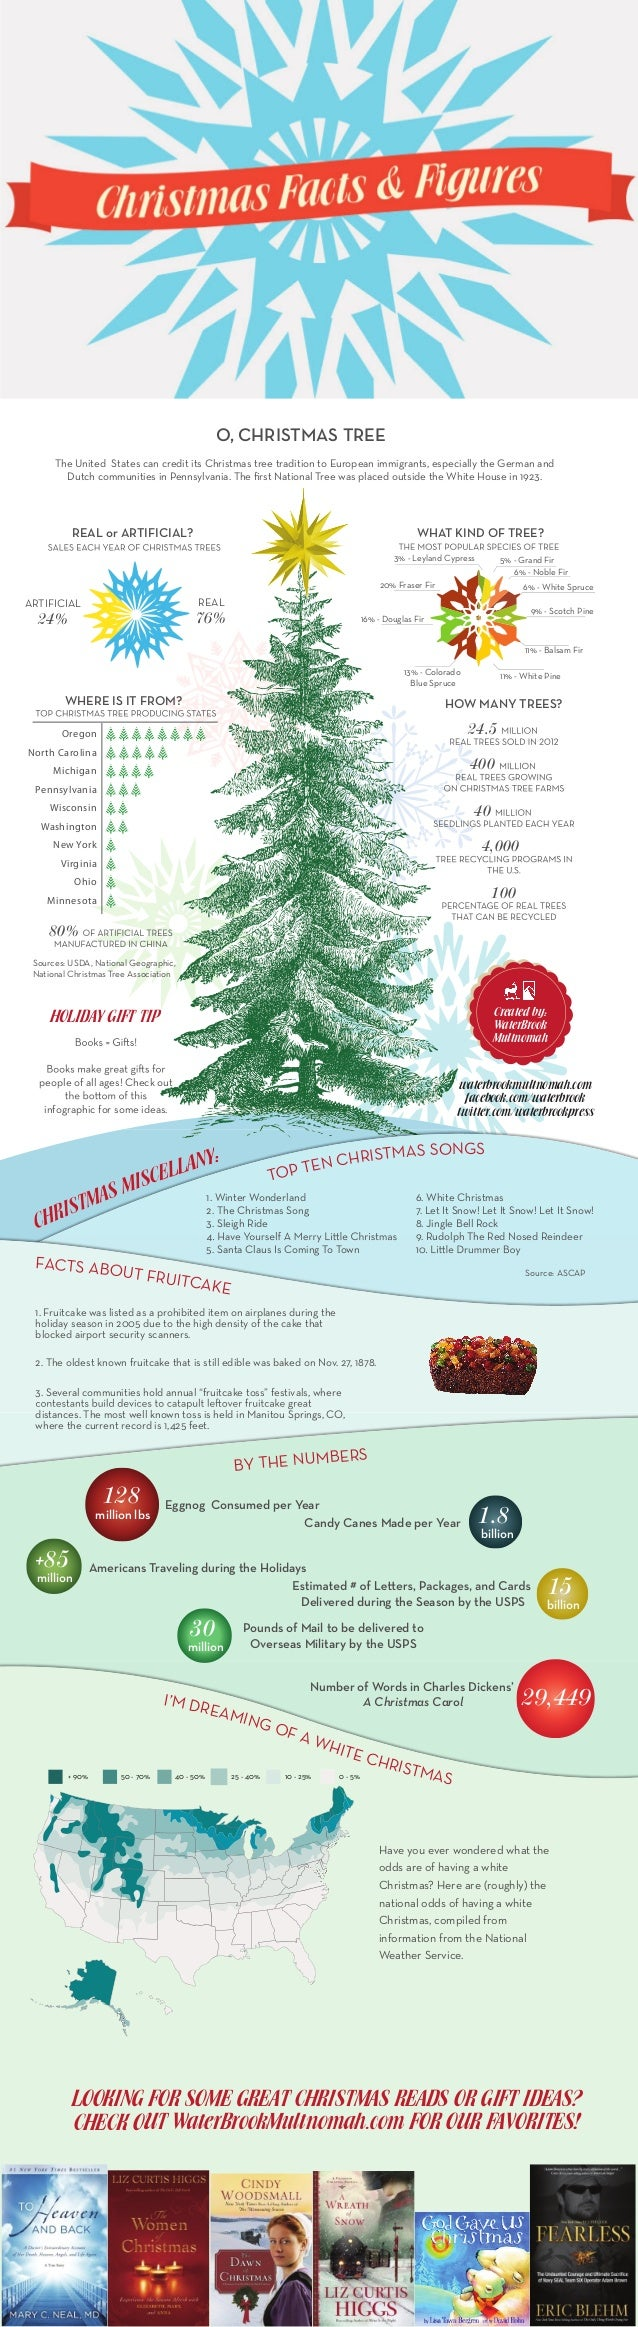 O, CHRISTMAS TREE The United States can credit its Christmas tree tradition to European immigrants, especially the German ...